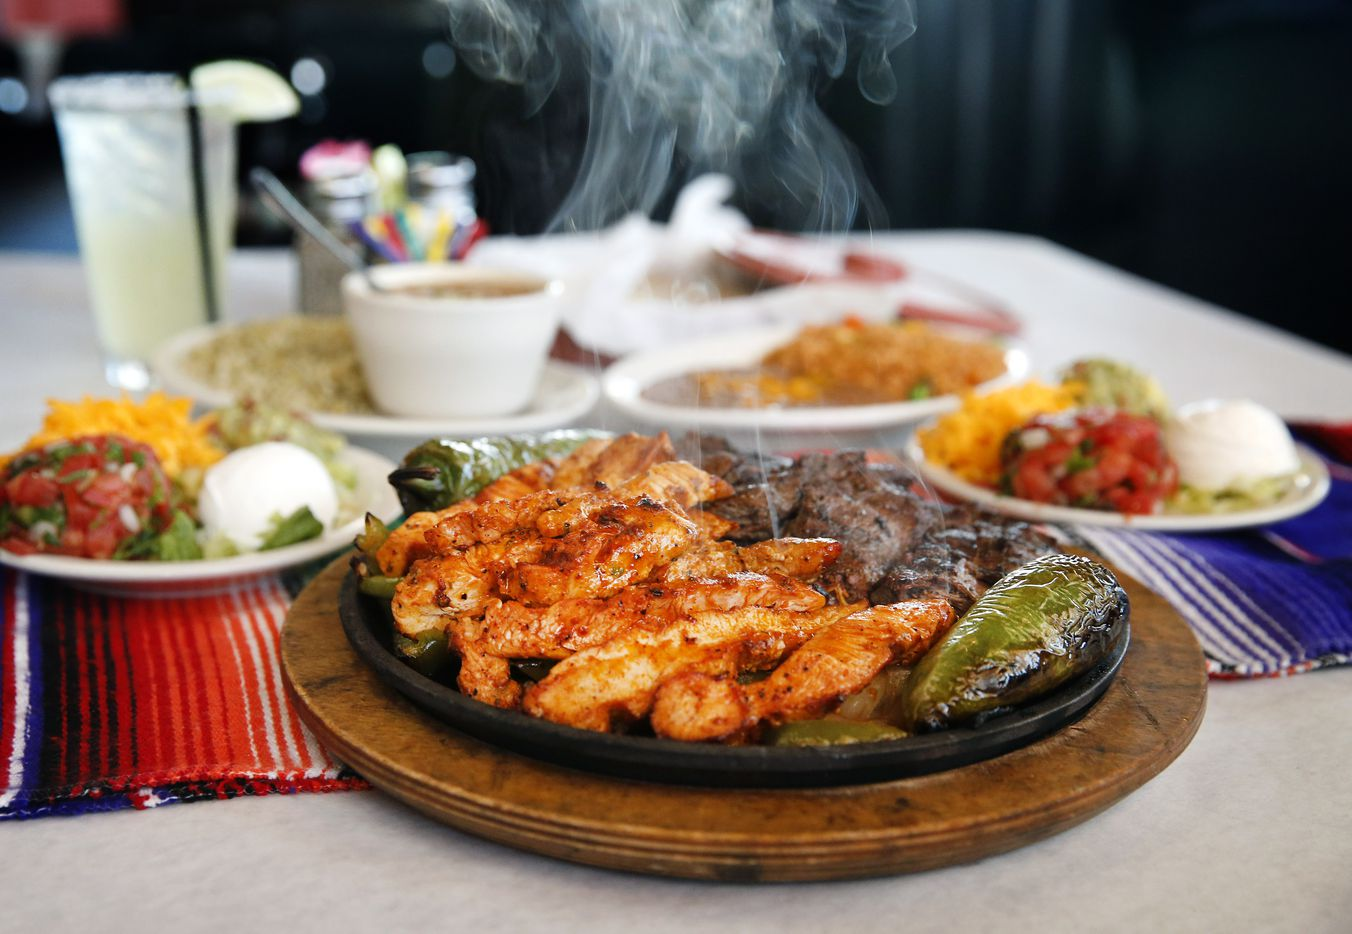 The two-person fajitas plate of chicken and beef with all the fixings is served at El Corazon Vintage Tex-Mex in McKinney, Texas, Thursday, April 25, 2019. They are hosting a four-day fiesta, from May 2 through 5, that doubles as a one-year anniversary party.